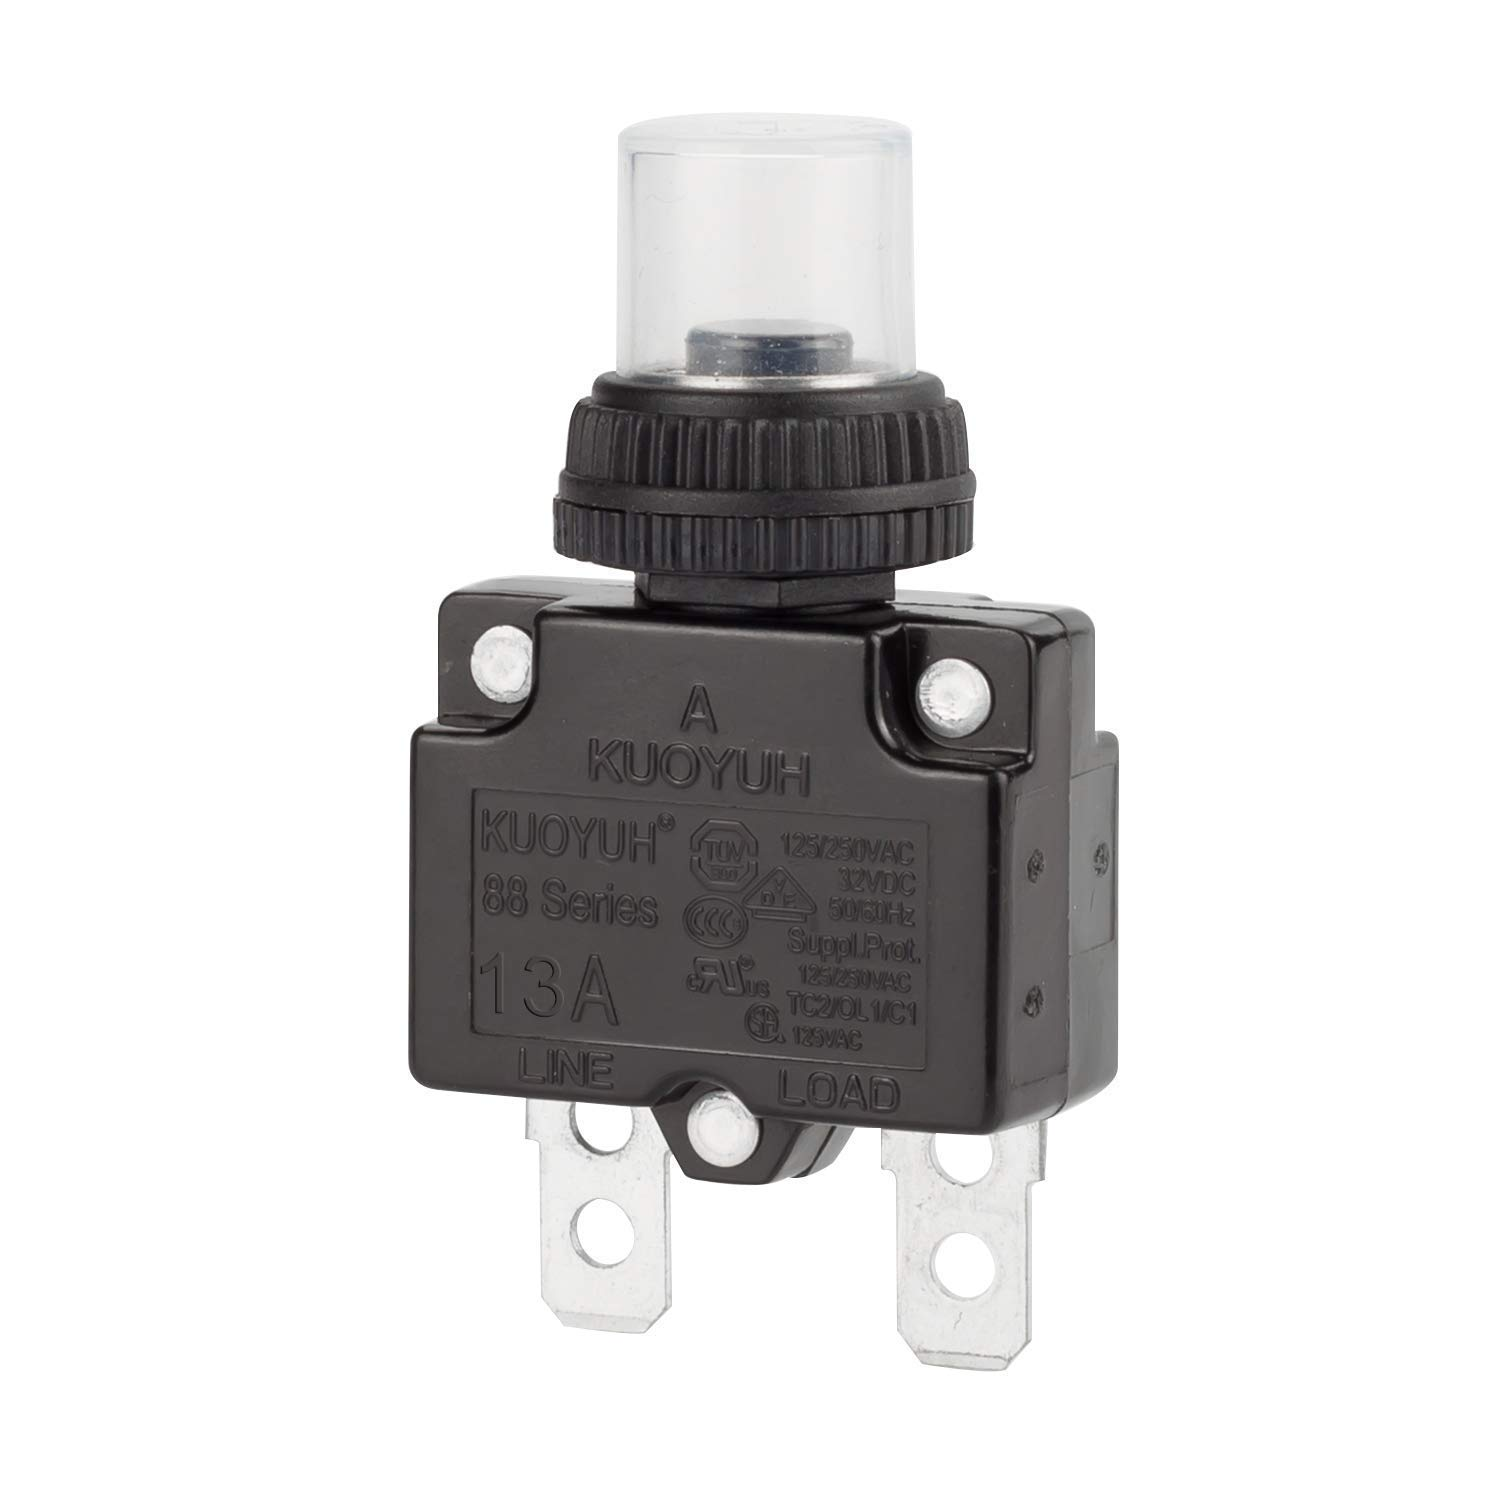 DIYhz 13Amp Circuit Breakers Thermal Overload Switch Protector 88 Series Manual Push Button Reset with Quick Connect Terminals and Waterproof Button Cap 32VDC or 125//250VAC 4PCS